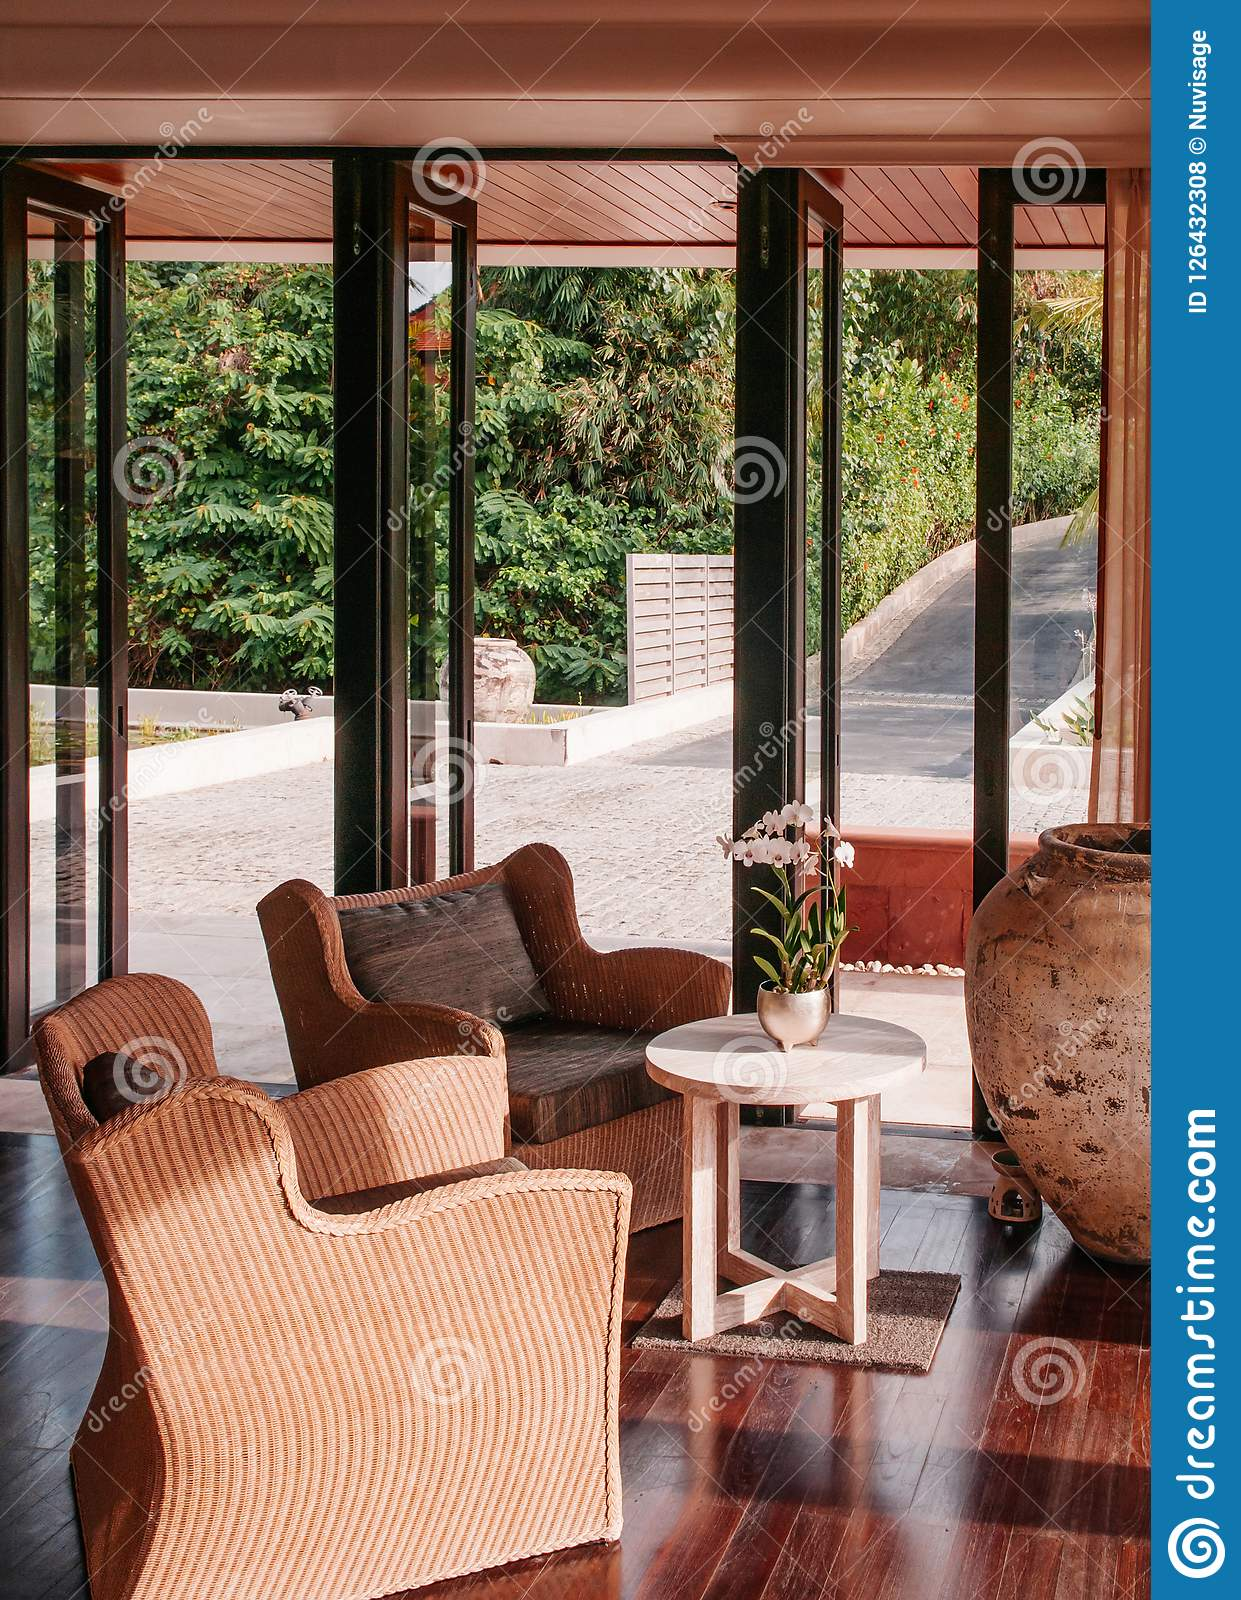 Contemporary Colonial Style Living Room With Vintage Rattan Chairs And Coffee Table Editorial Stock Photo Image Of Indoor Apartment 126432308